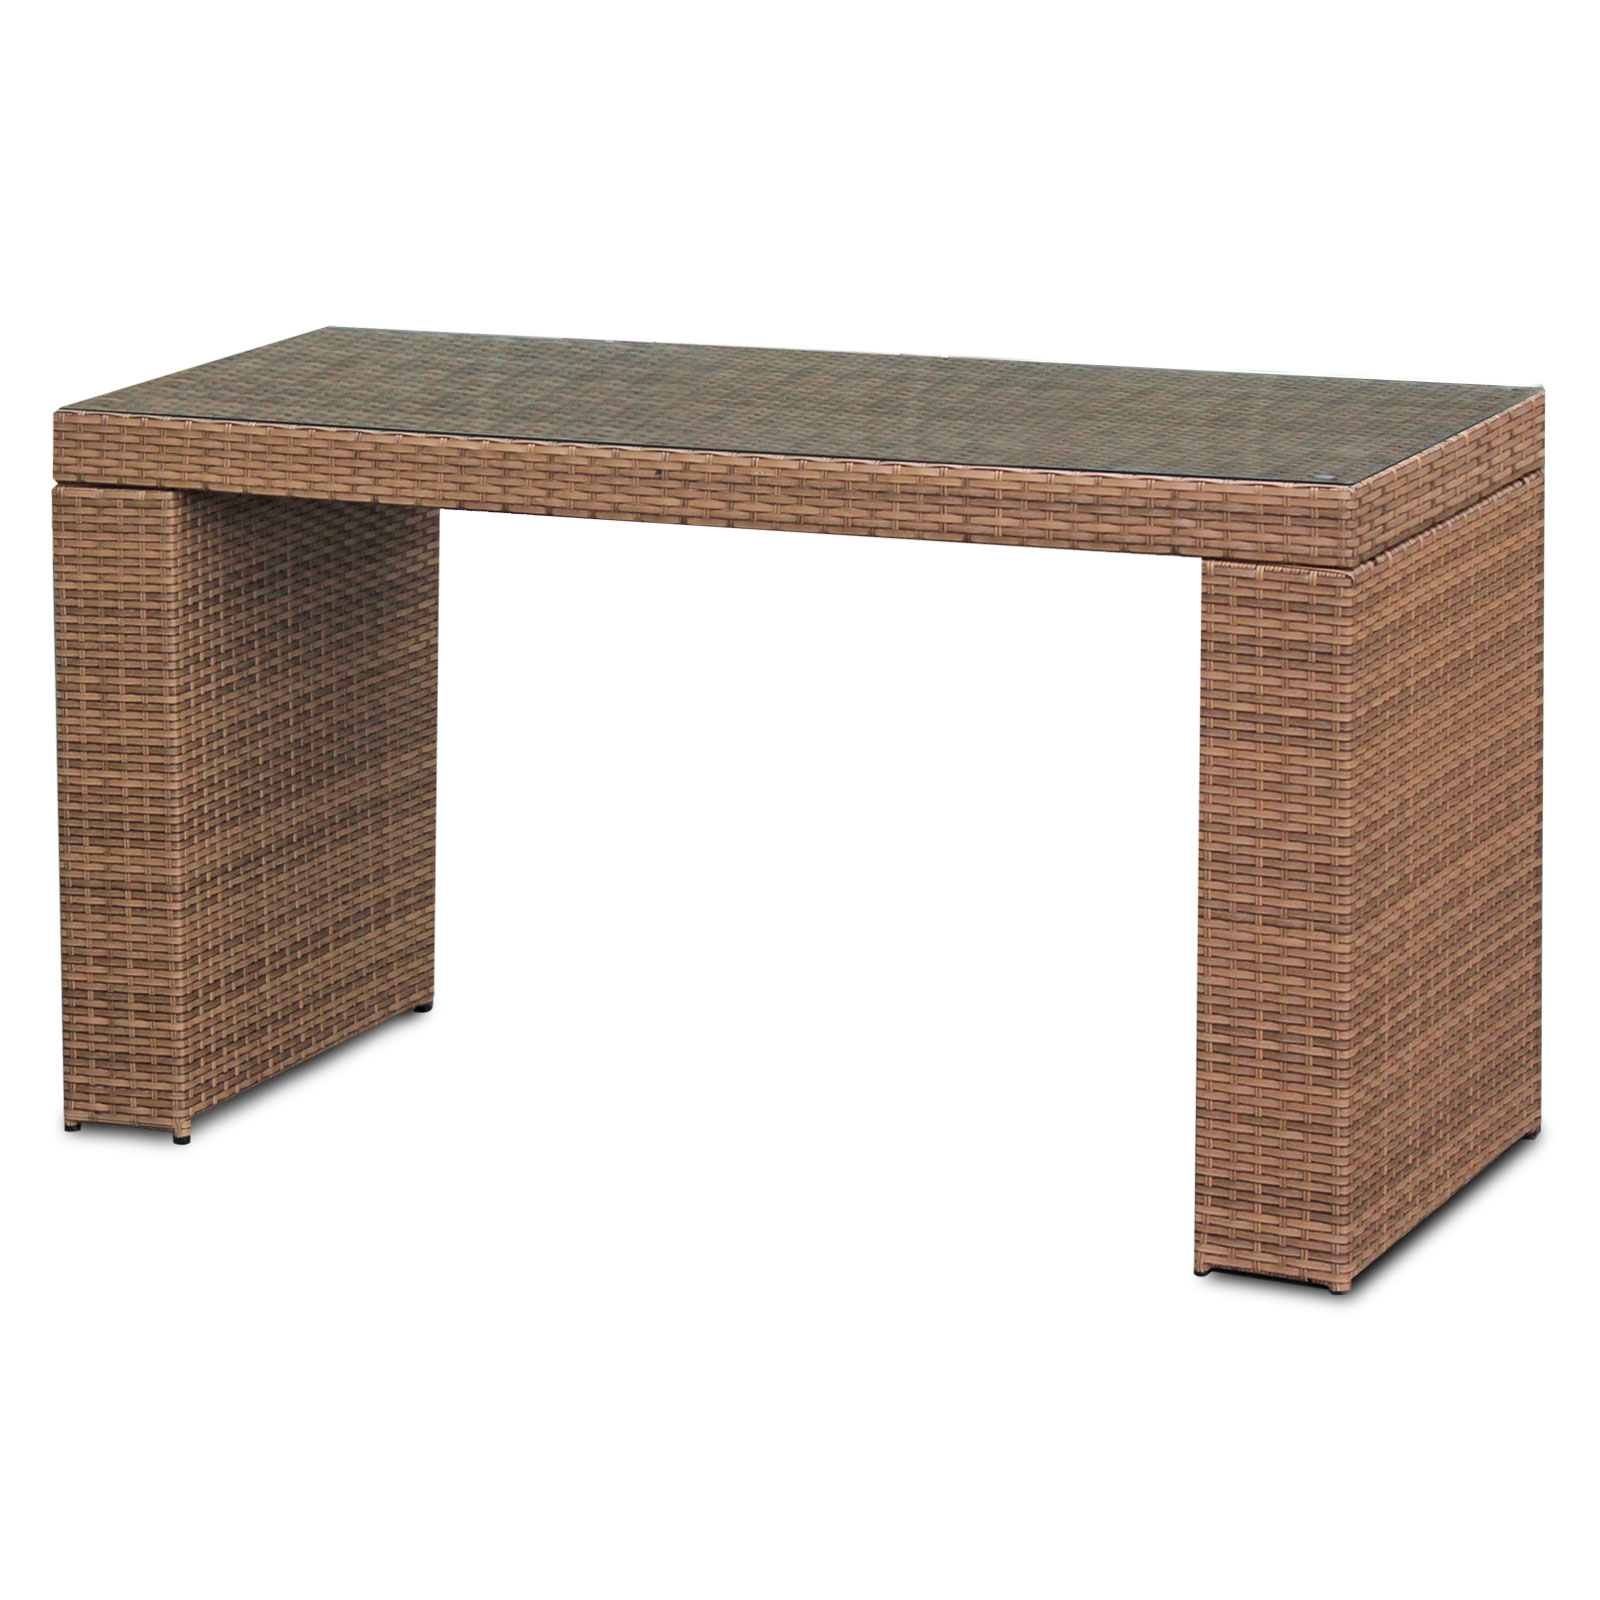 Tuscan Bar Table Set With Barstools 7 Piece Outdoor Wicker Patio Furniture    Walmart.com